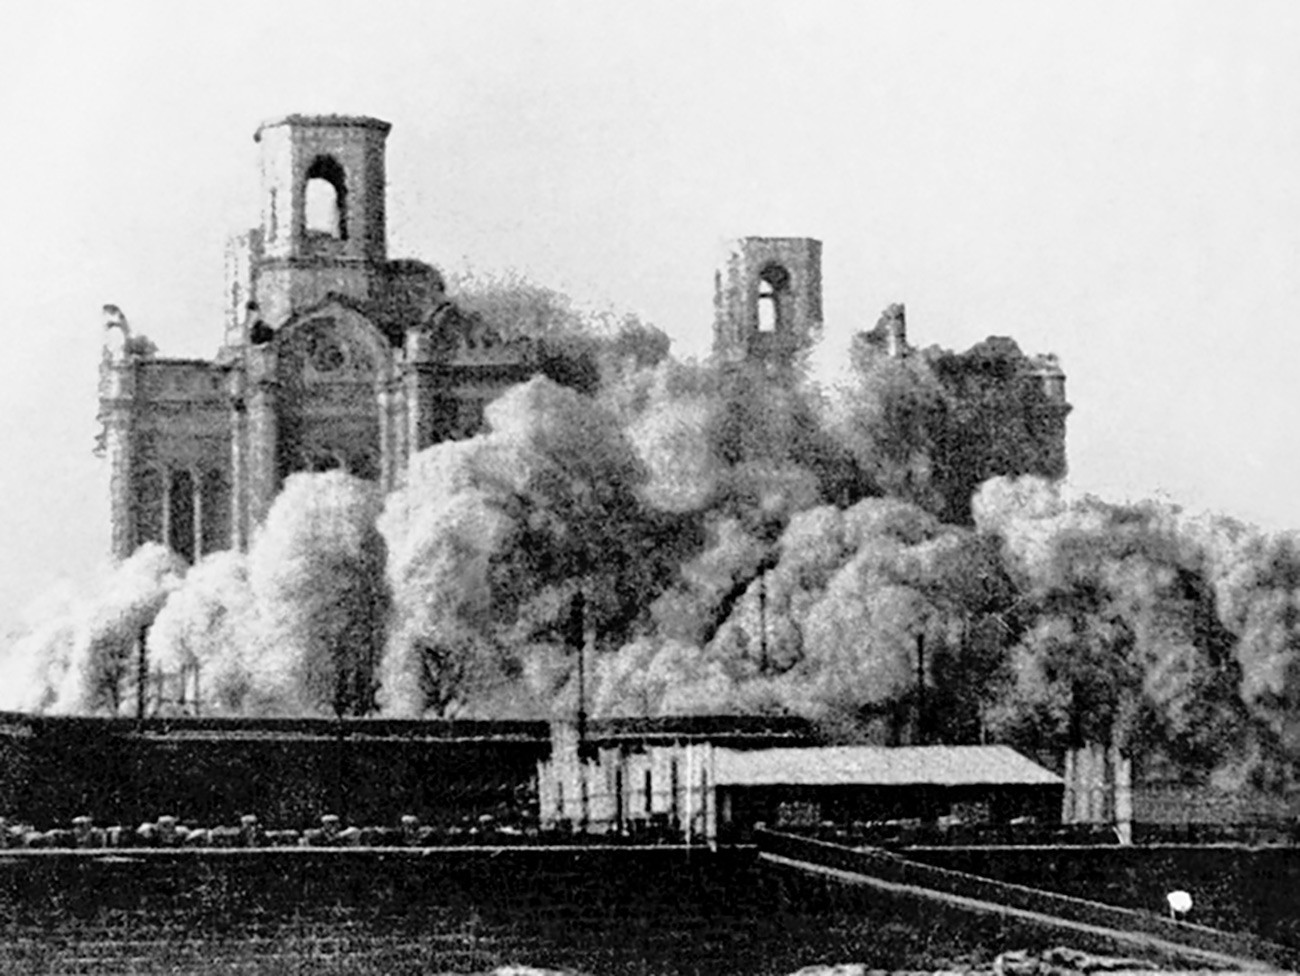 Blowing up the Cathedral of Christ the Savior in 1931.